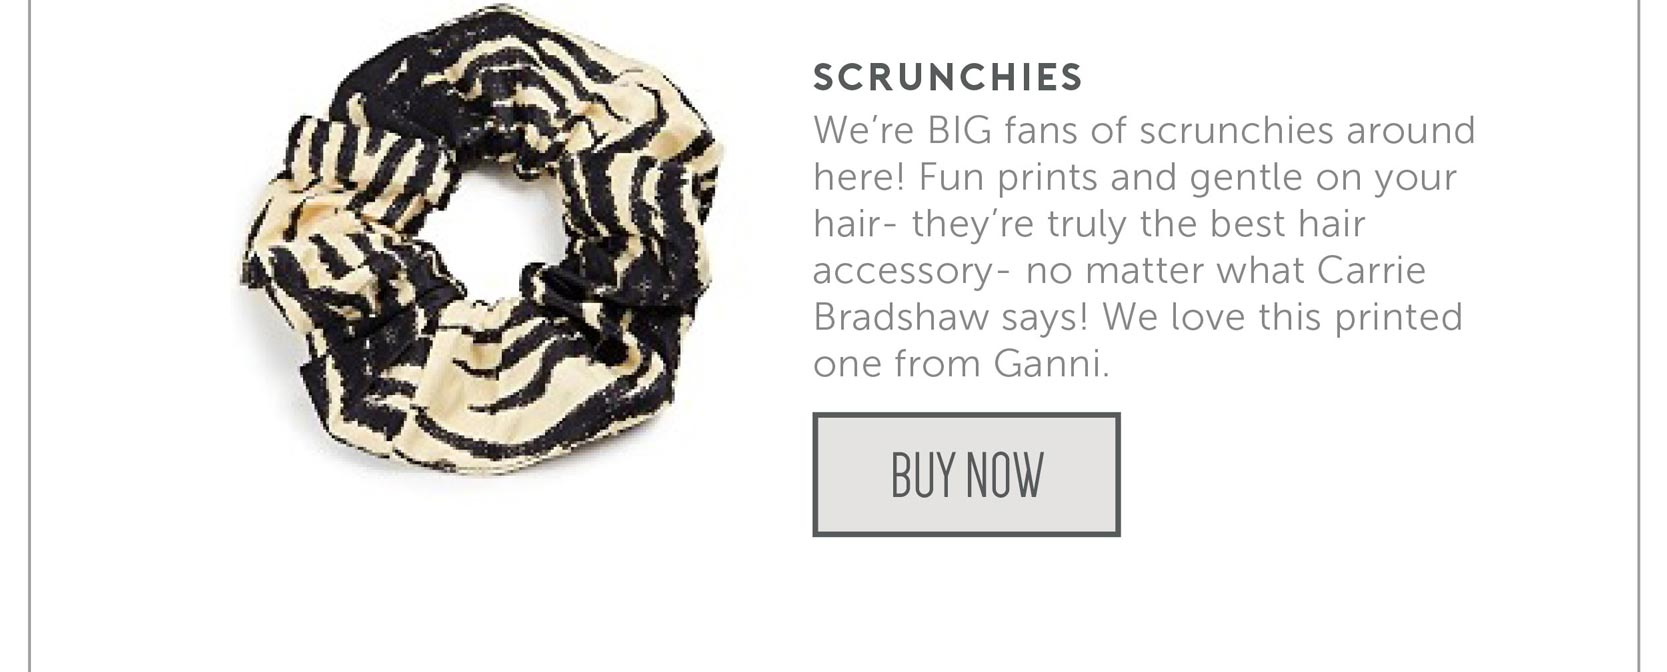 We're BIG fans of scrunchies around here! Fun prints and gentle on your hair- they're truly the best hair accessory- no matter what Carrie Bradshaw says! We love this printed one from Ganni.